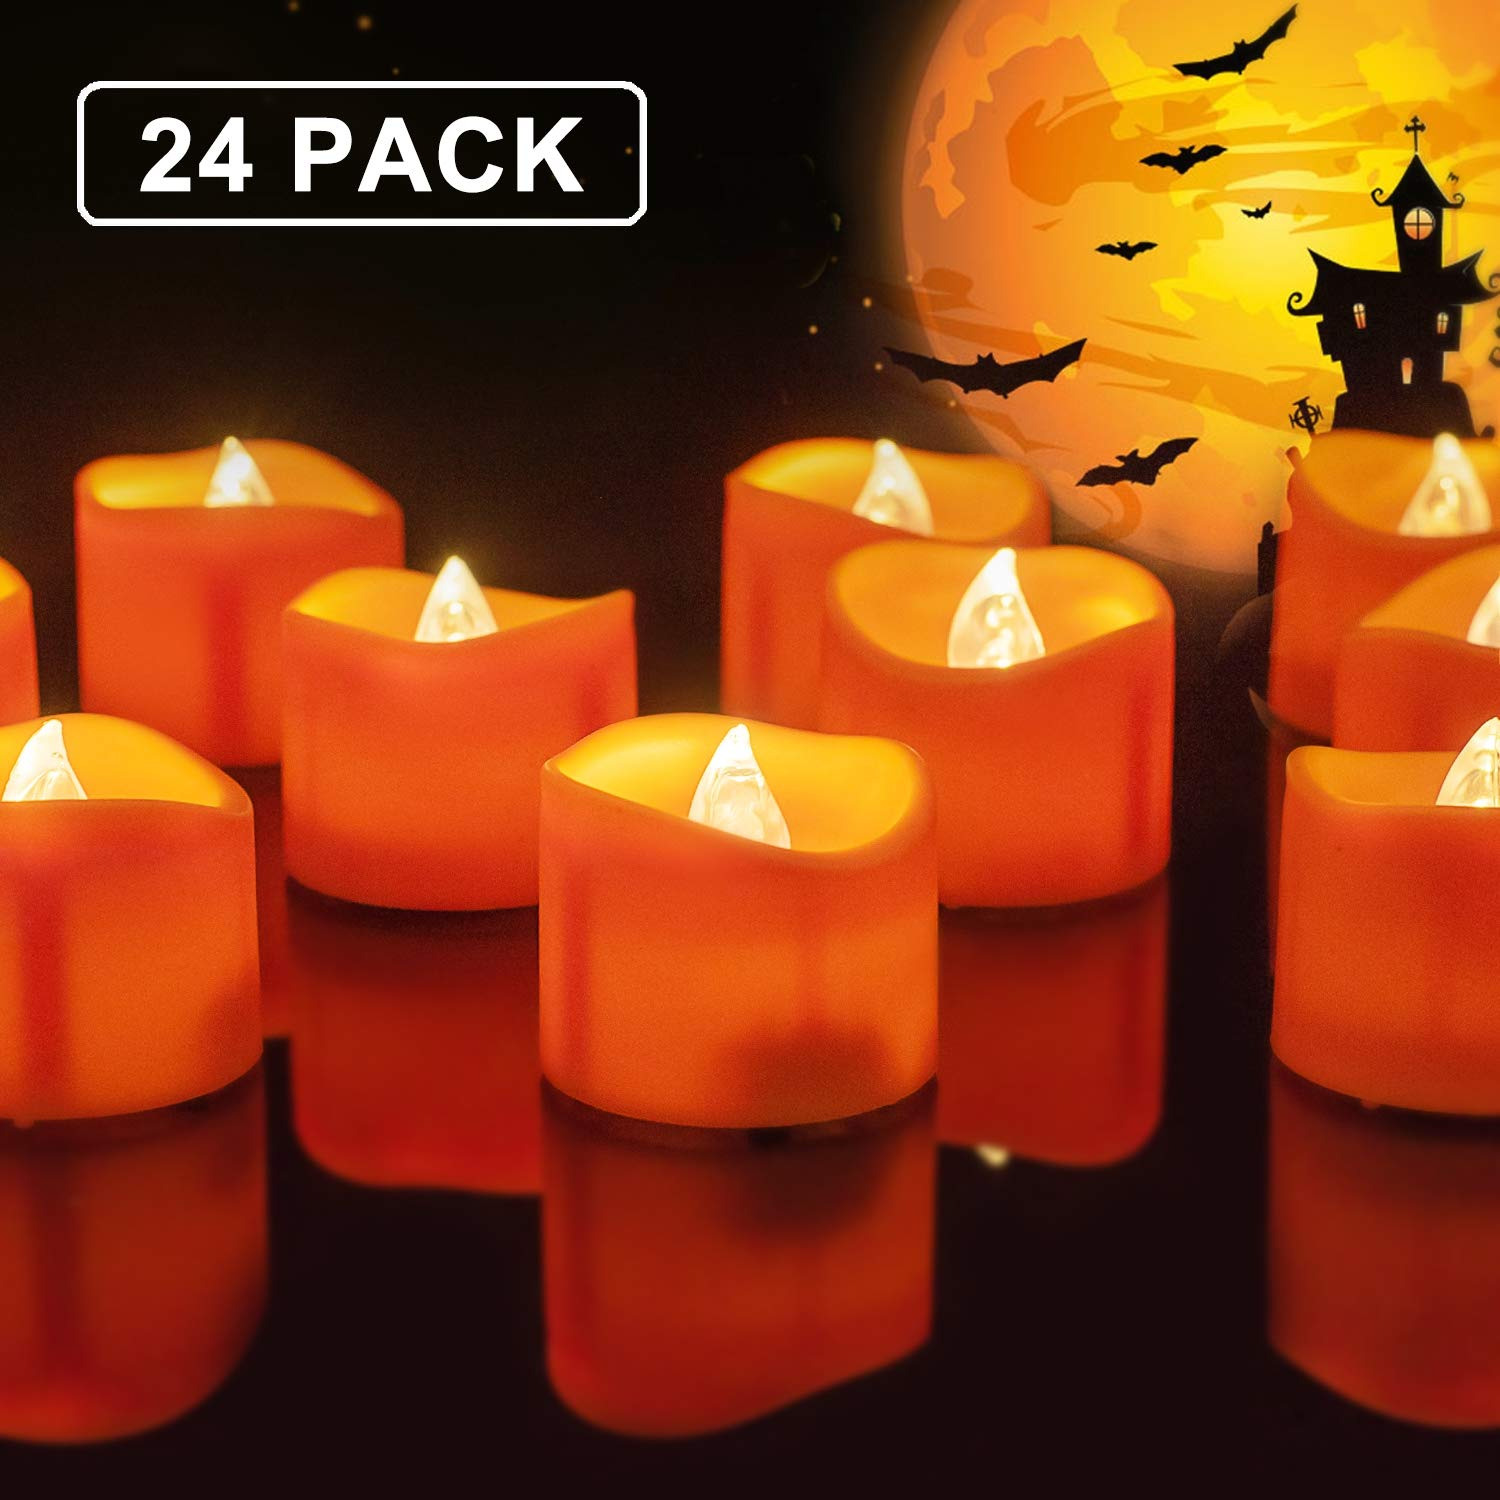 Homemory 24 Pack Battery Operated LED Tea Lights, Orange Flameless Votive Tealights with Warm White Flickering Lights, Small Electric Fake Tea Candles Realistic for Halloween, Pumpkin Lanterns by Homemory